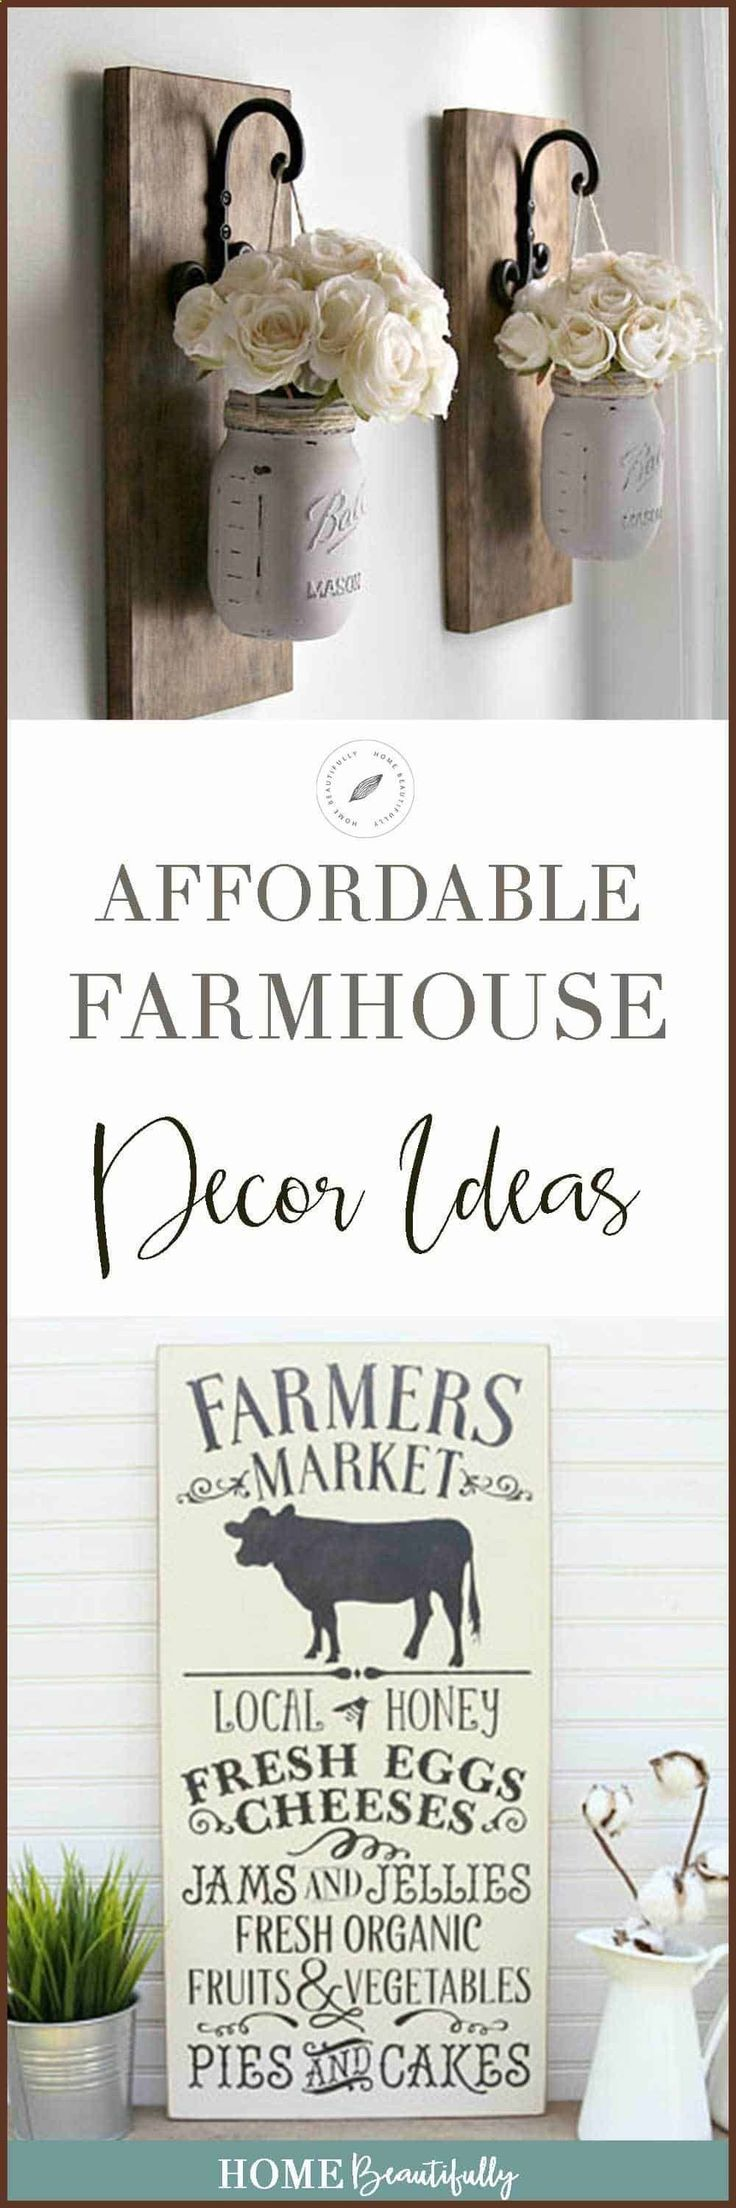 These affordable DIY farmhouse ideas are perfect for decoration on a budget for your home. Add a rustic, cozy charm with a vintage, even boho feel to your master and guest bedroom, living room, or walls. Easy, fun, and inexpensive! #farmhouse #decorating Similar ideas: farmhouse decor diy | farmhouse decor on a budget | farmhouse decor living room | farmhouse decor bedroom | rustic farmhouse decor ideas | fixer upper decor ideas #homedecoronabudgetlivingroom